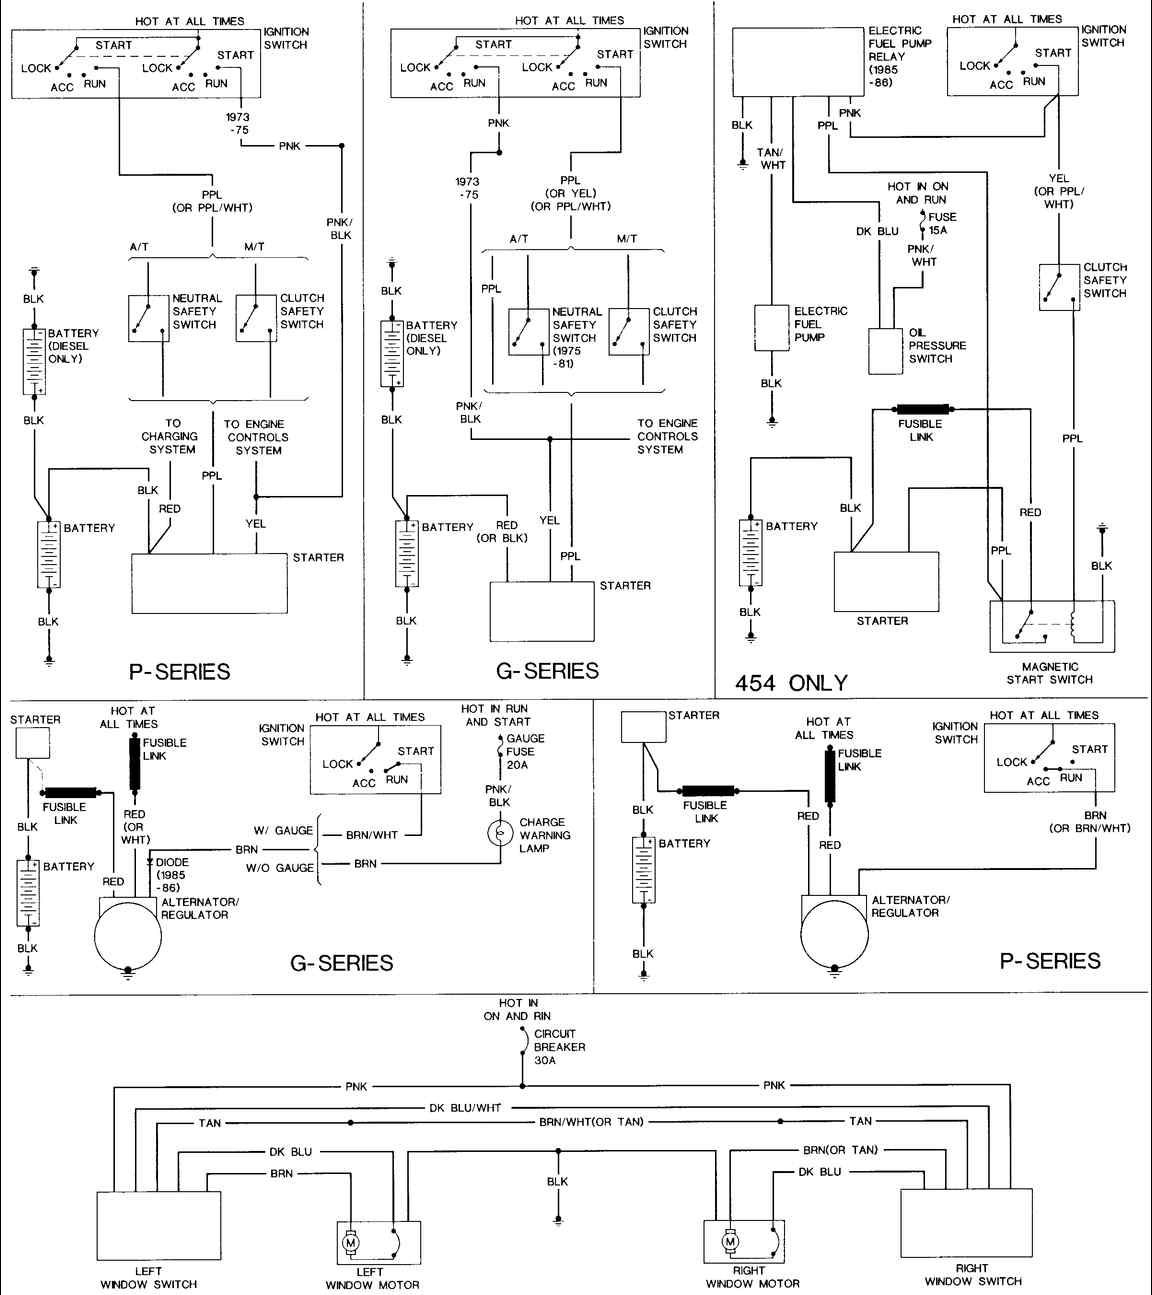 Chevrolet Van Wiring Diagram About Wiring Diagram Aircraft Wiring Diagrams  1996 G20 Wiring Diagram